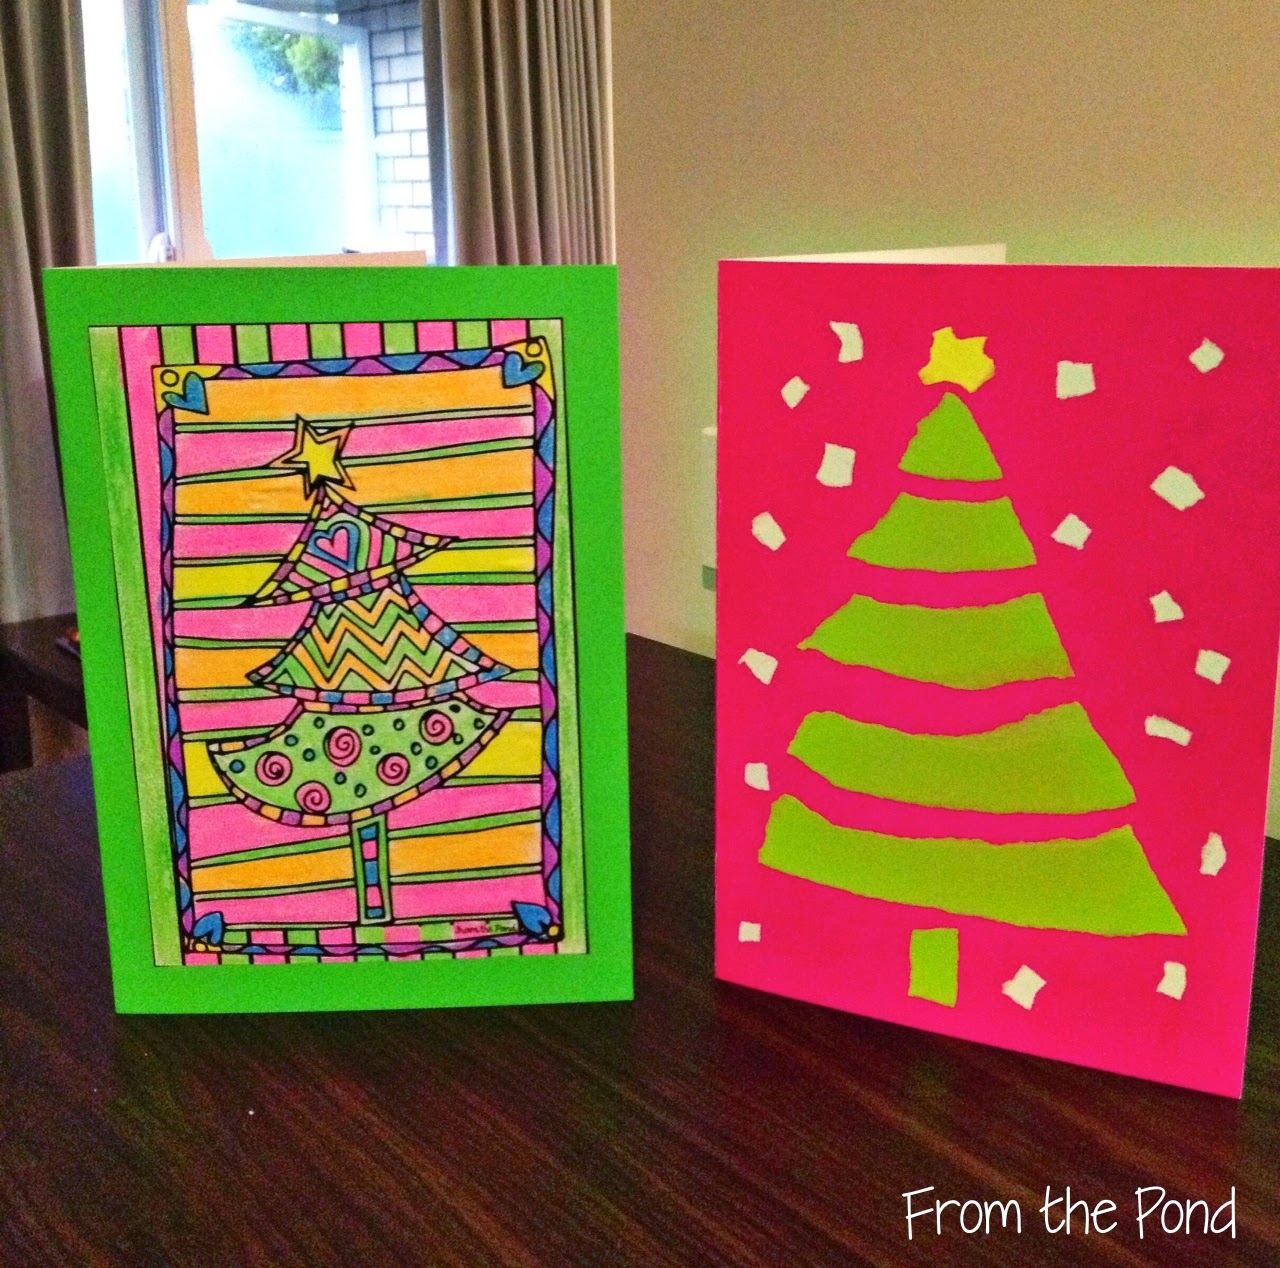 Marvelous Free Christmas Card Ideas For Children To Make Part - 10: Christmas Card Ideas